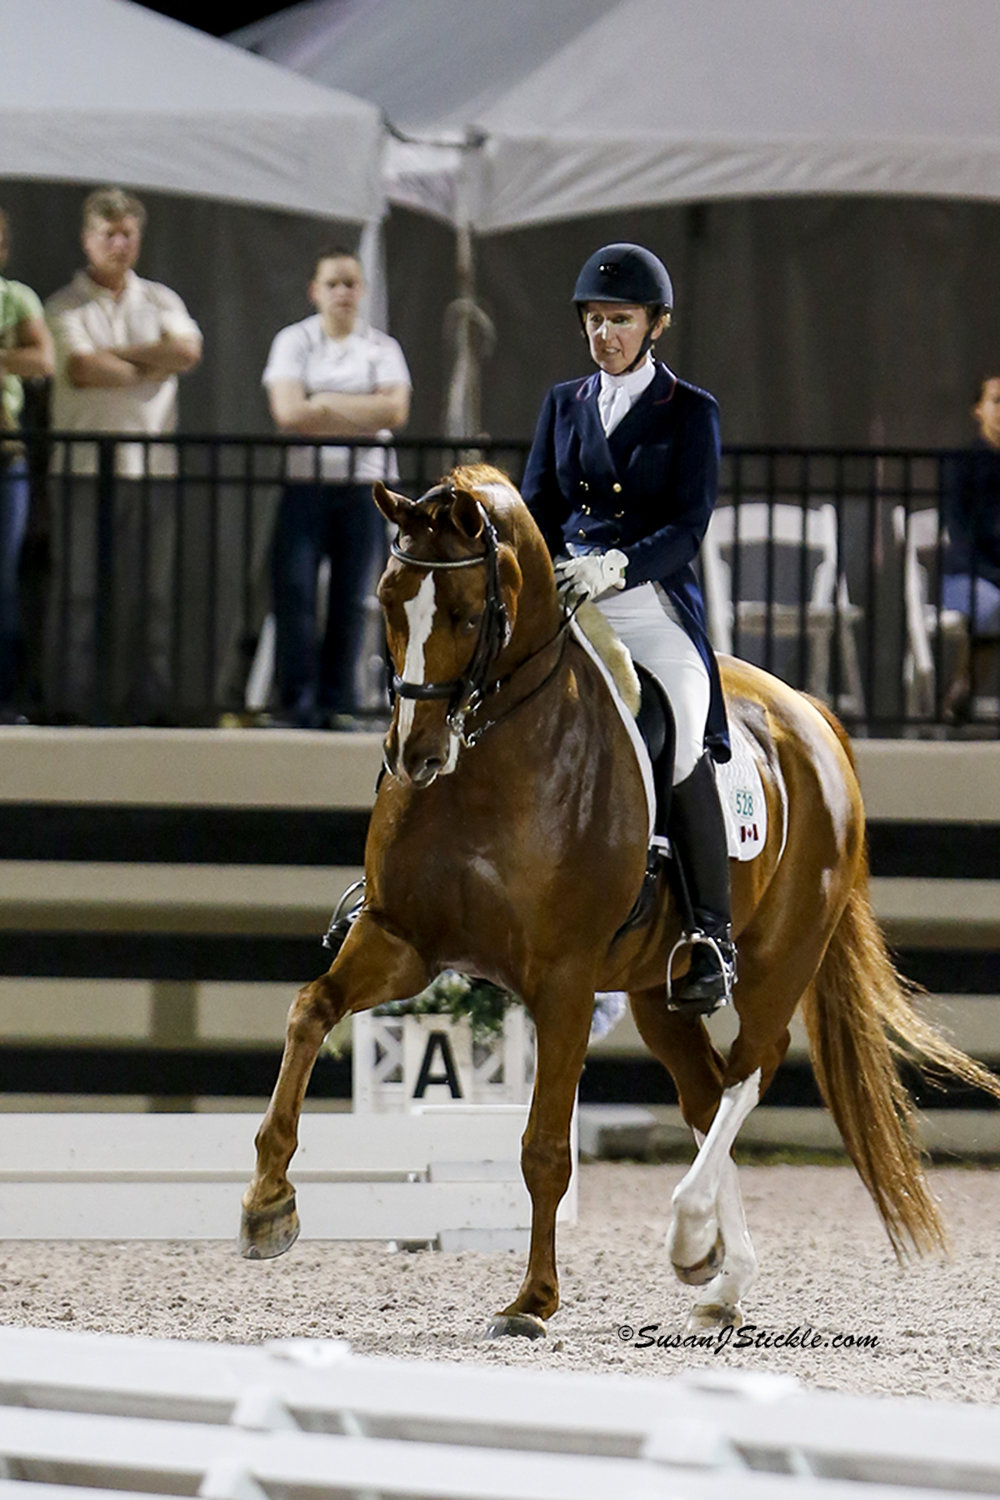 Diane Creech and Devon L in the Grand Prix Freestyle at the Adequan Global Dressage Festival 1 CDI-W , sponsored by MTICA Farm and Everglades Dressage. Photo by Susan Stickle.